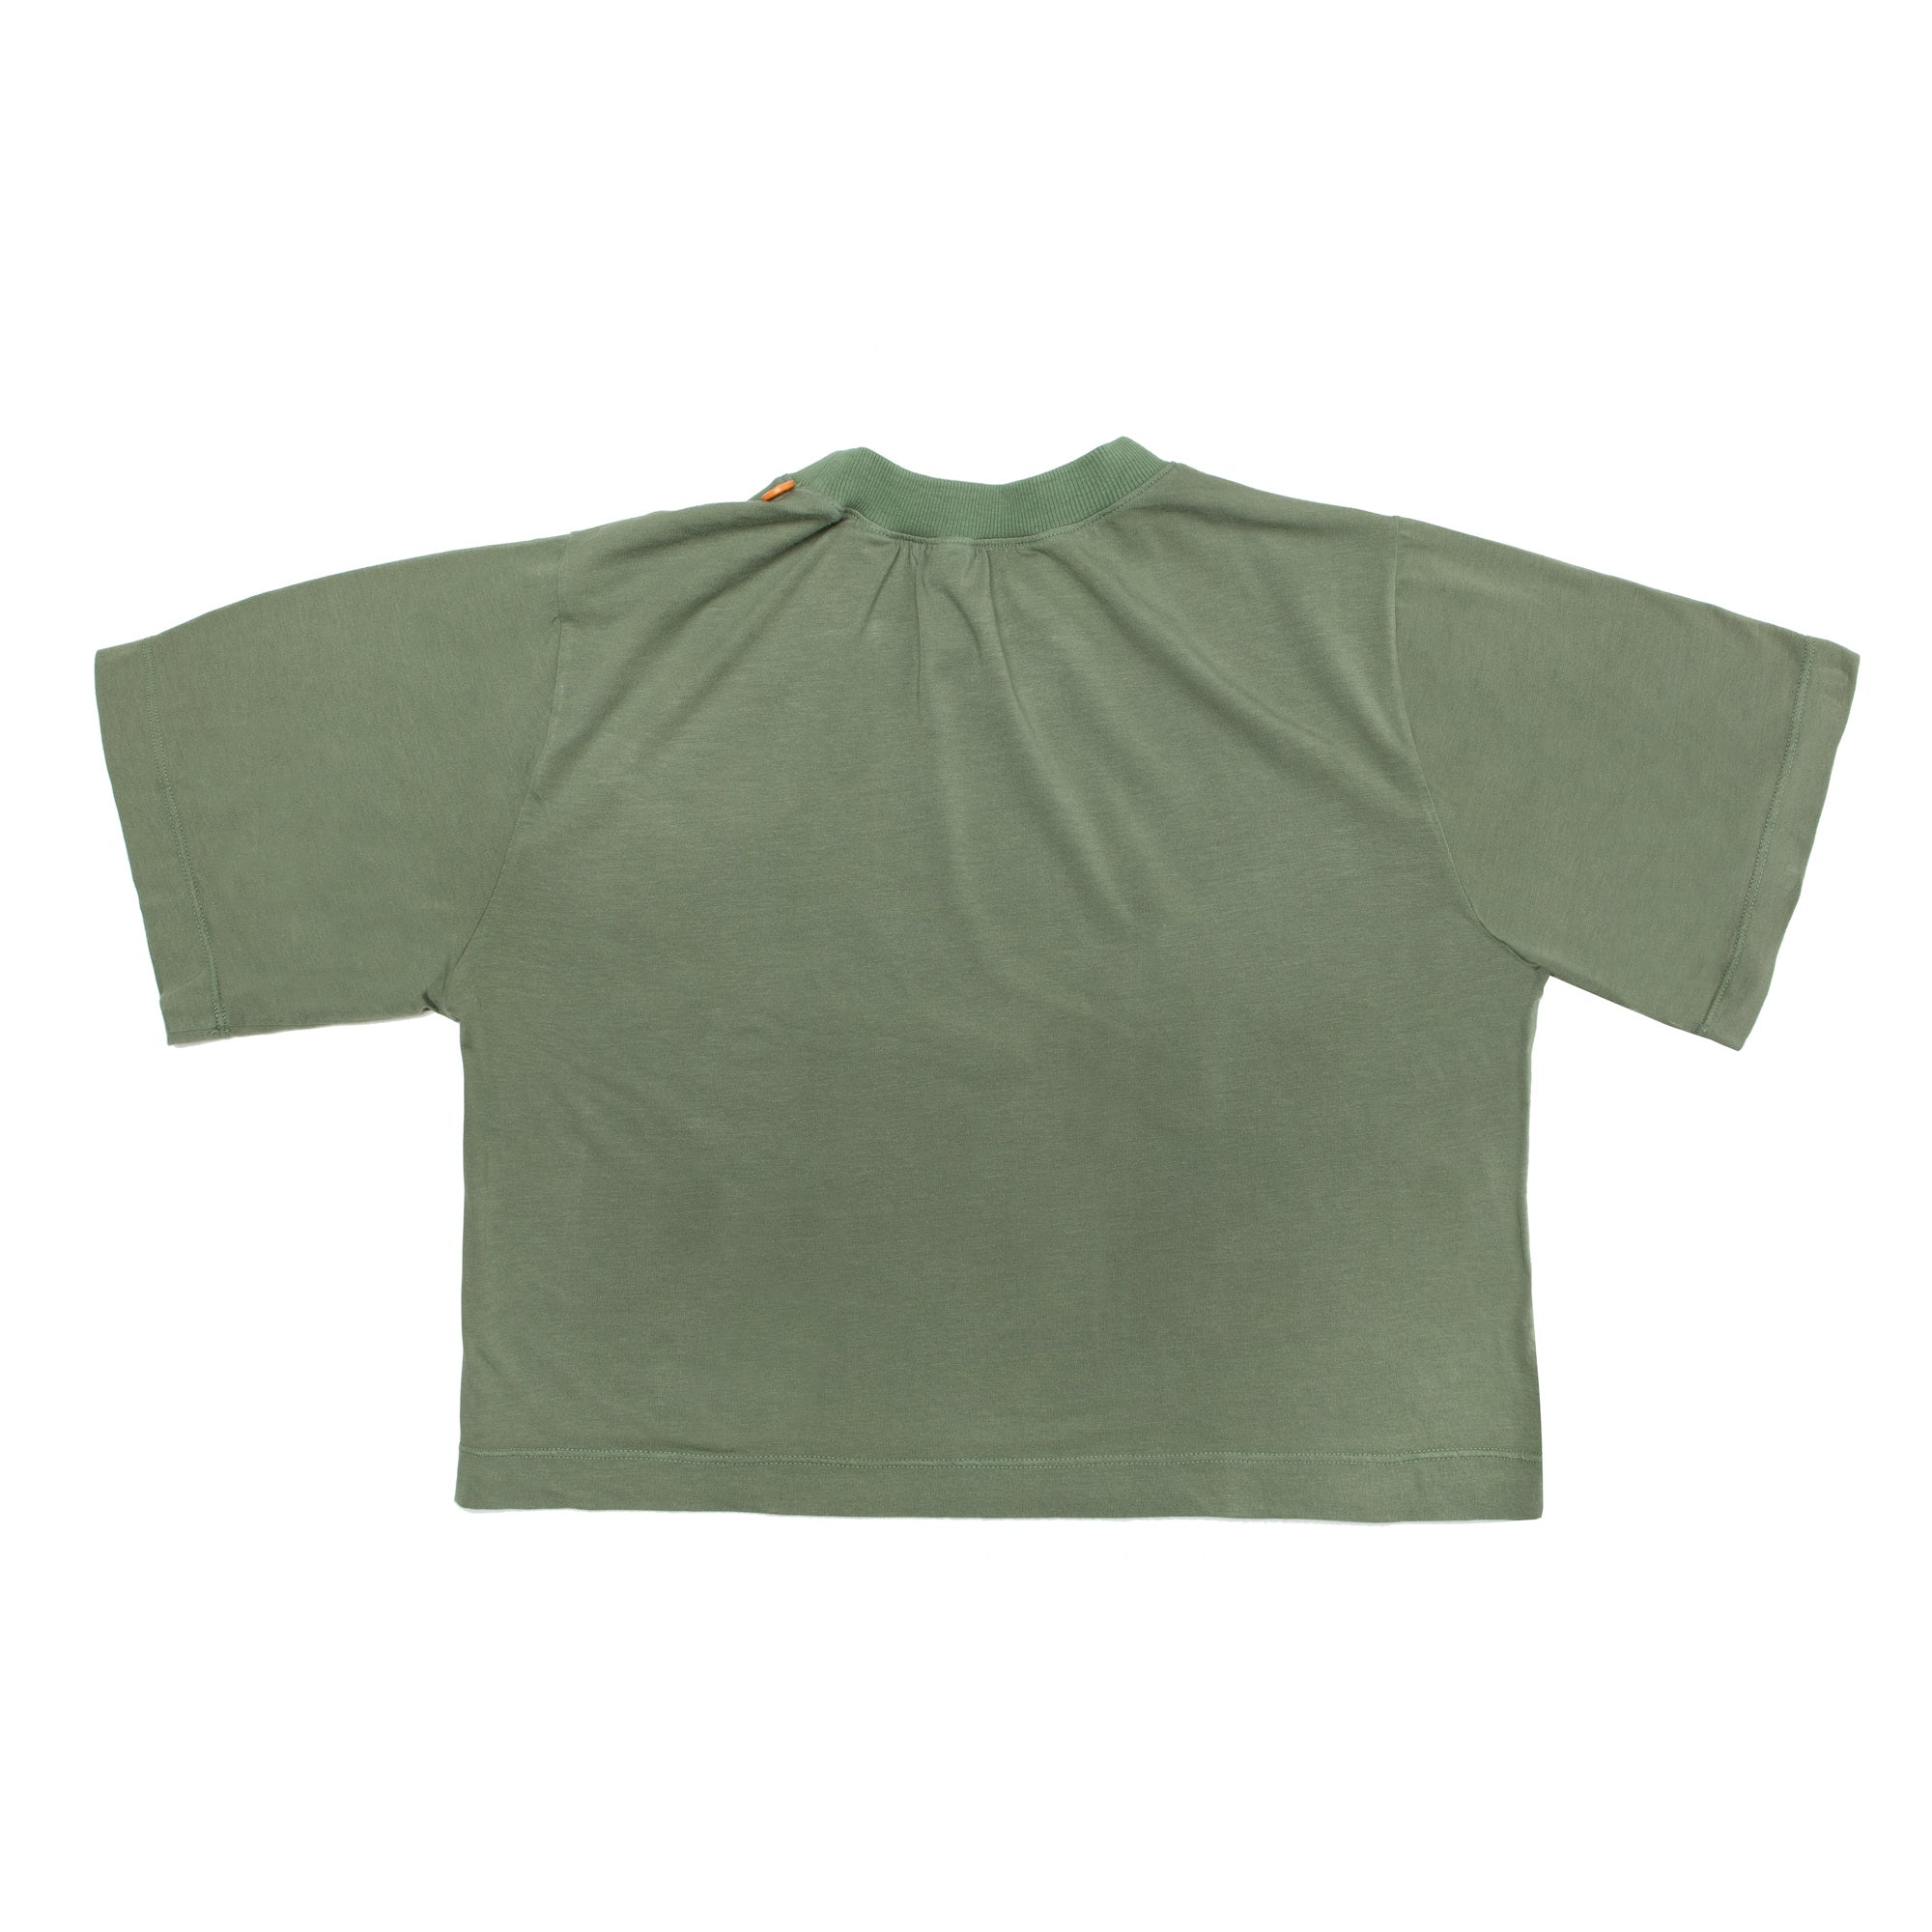 The Green Crop Tee